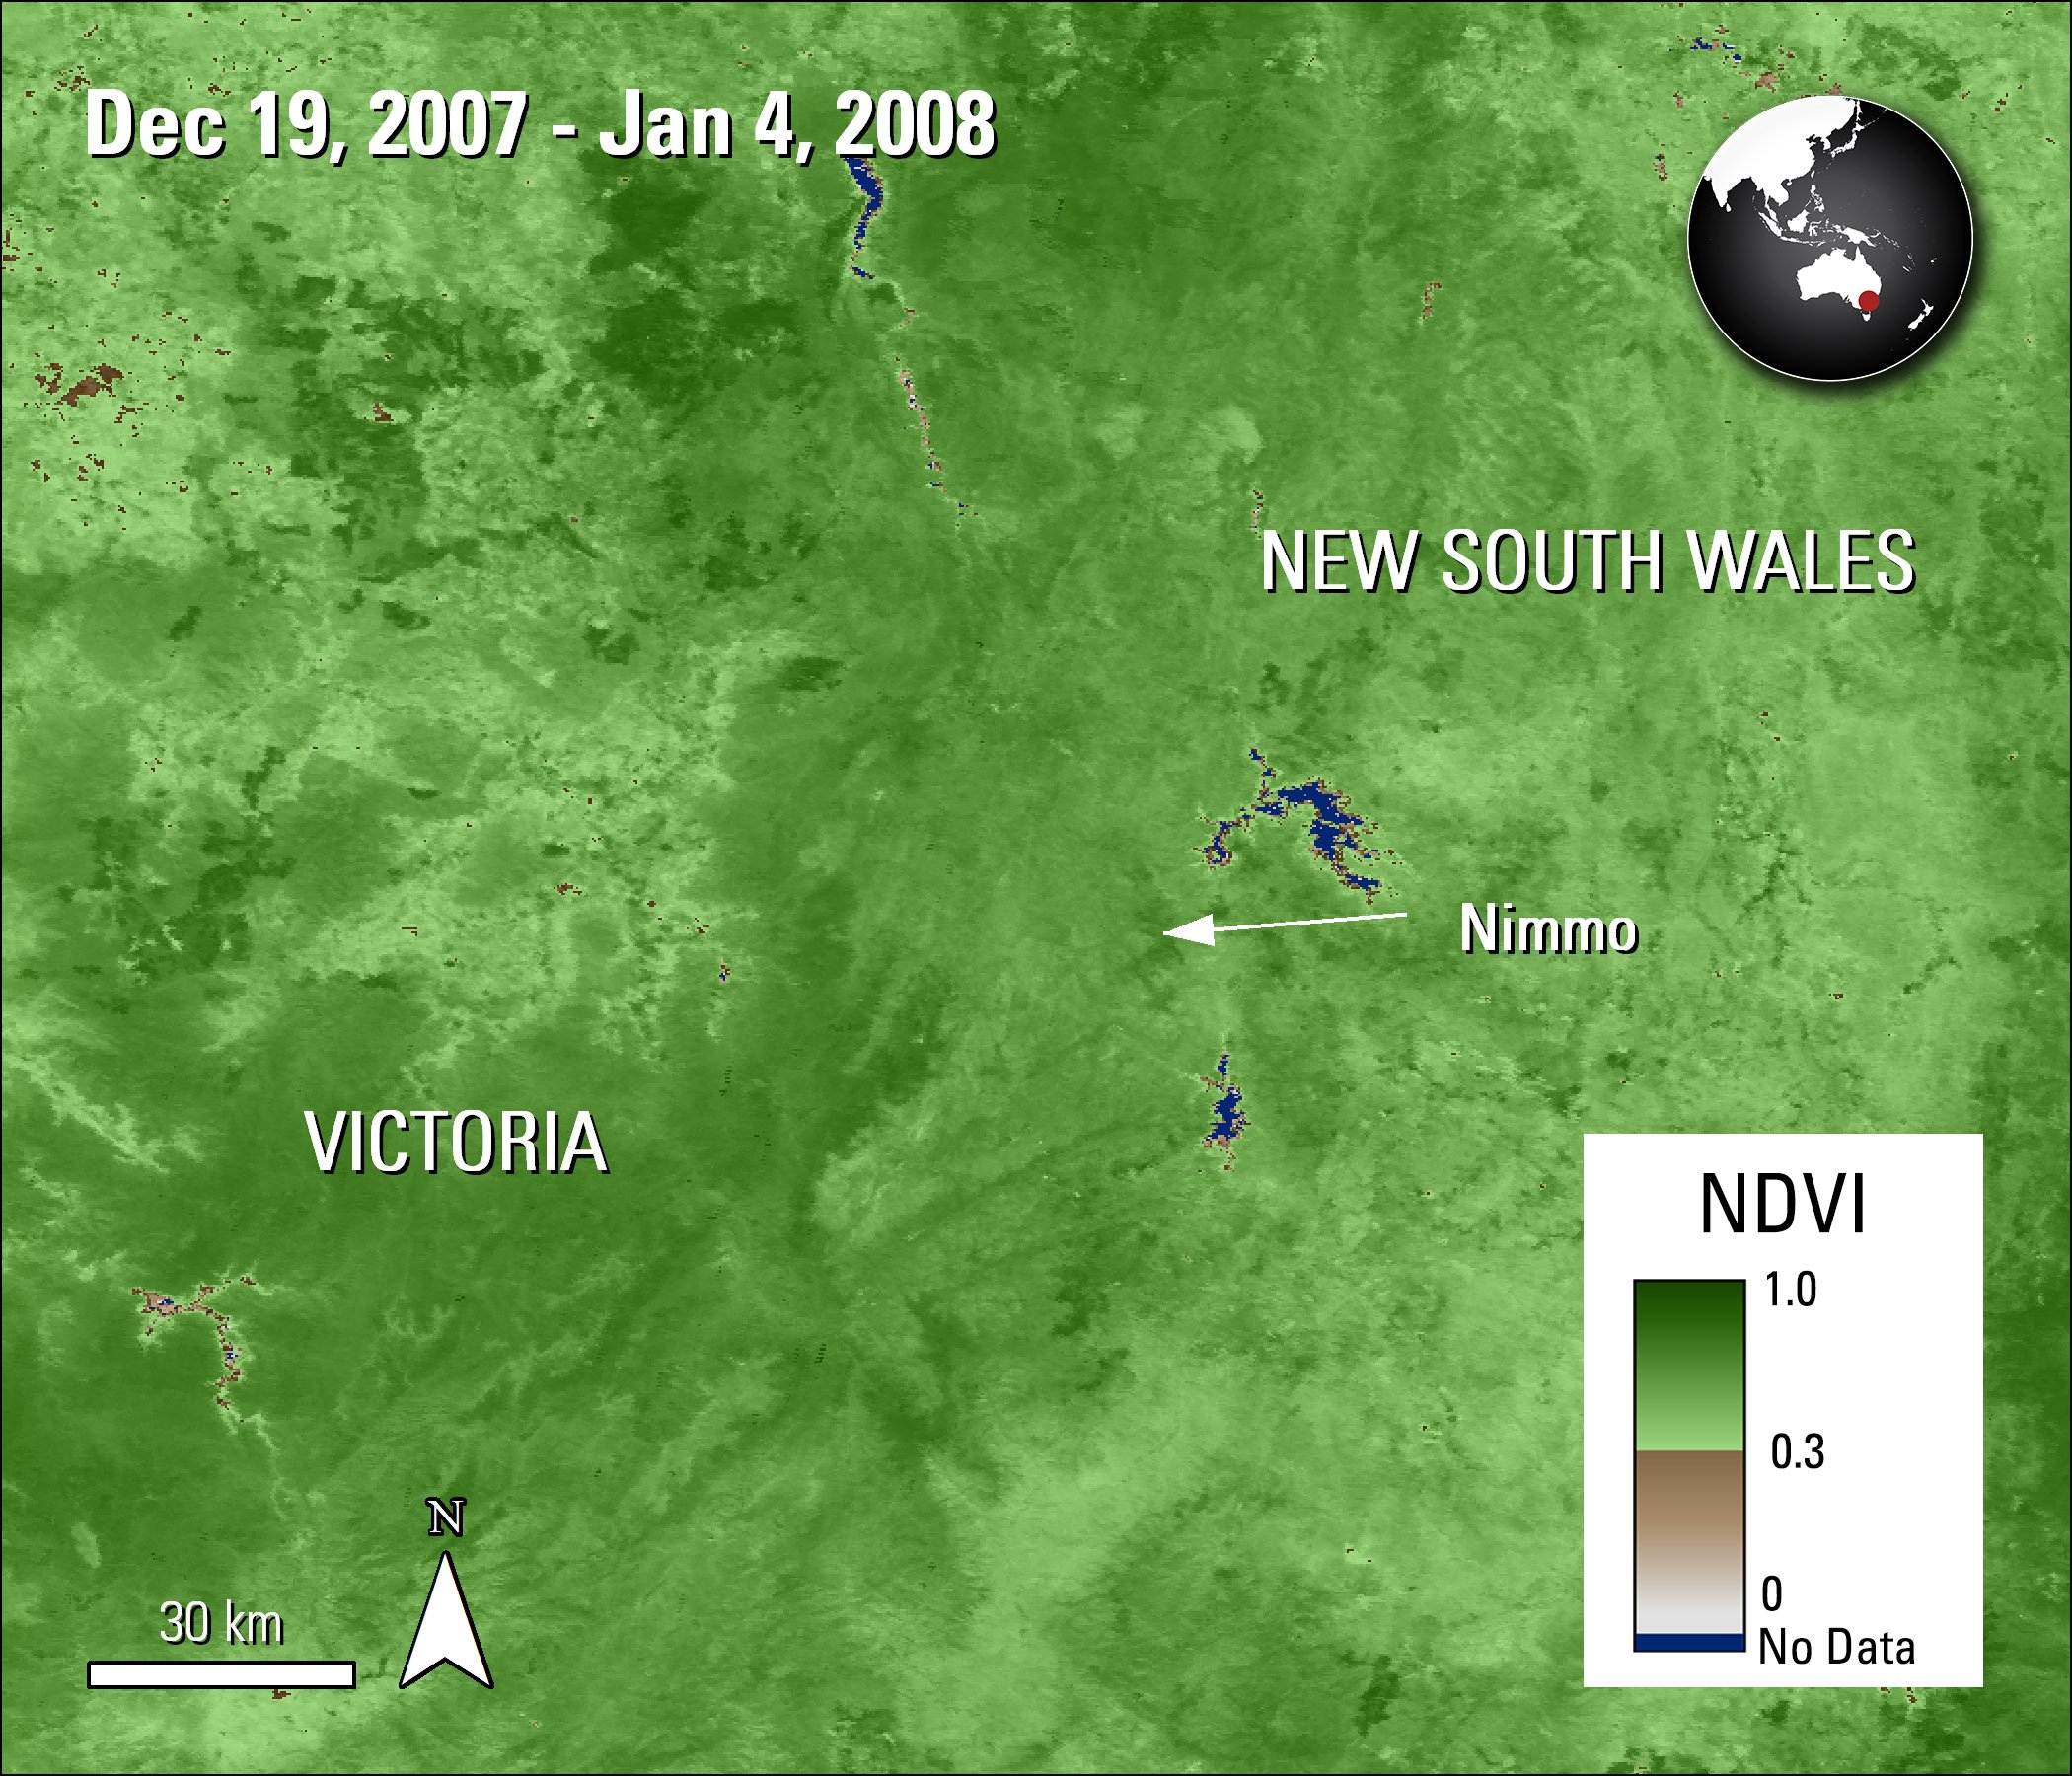 Terra MODIS NDVI data over part of Australia, acquired between December 19, 2007 and January 4, 2008.